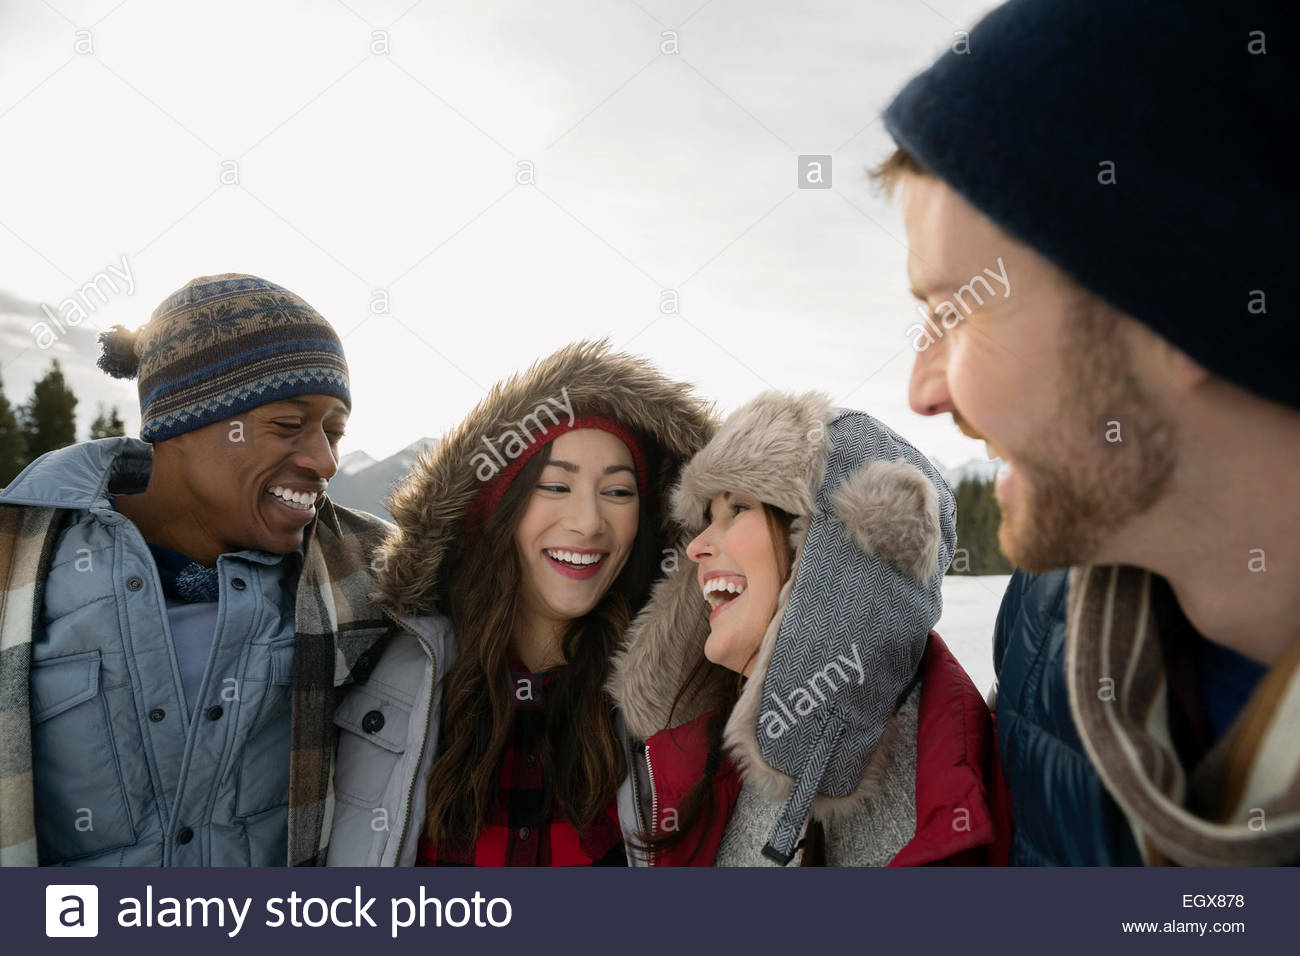 Couples in warm clothing laughing outdoors - Stock Image